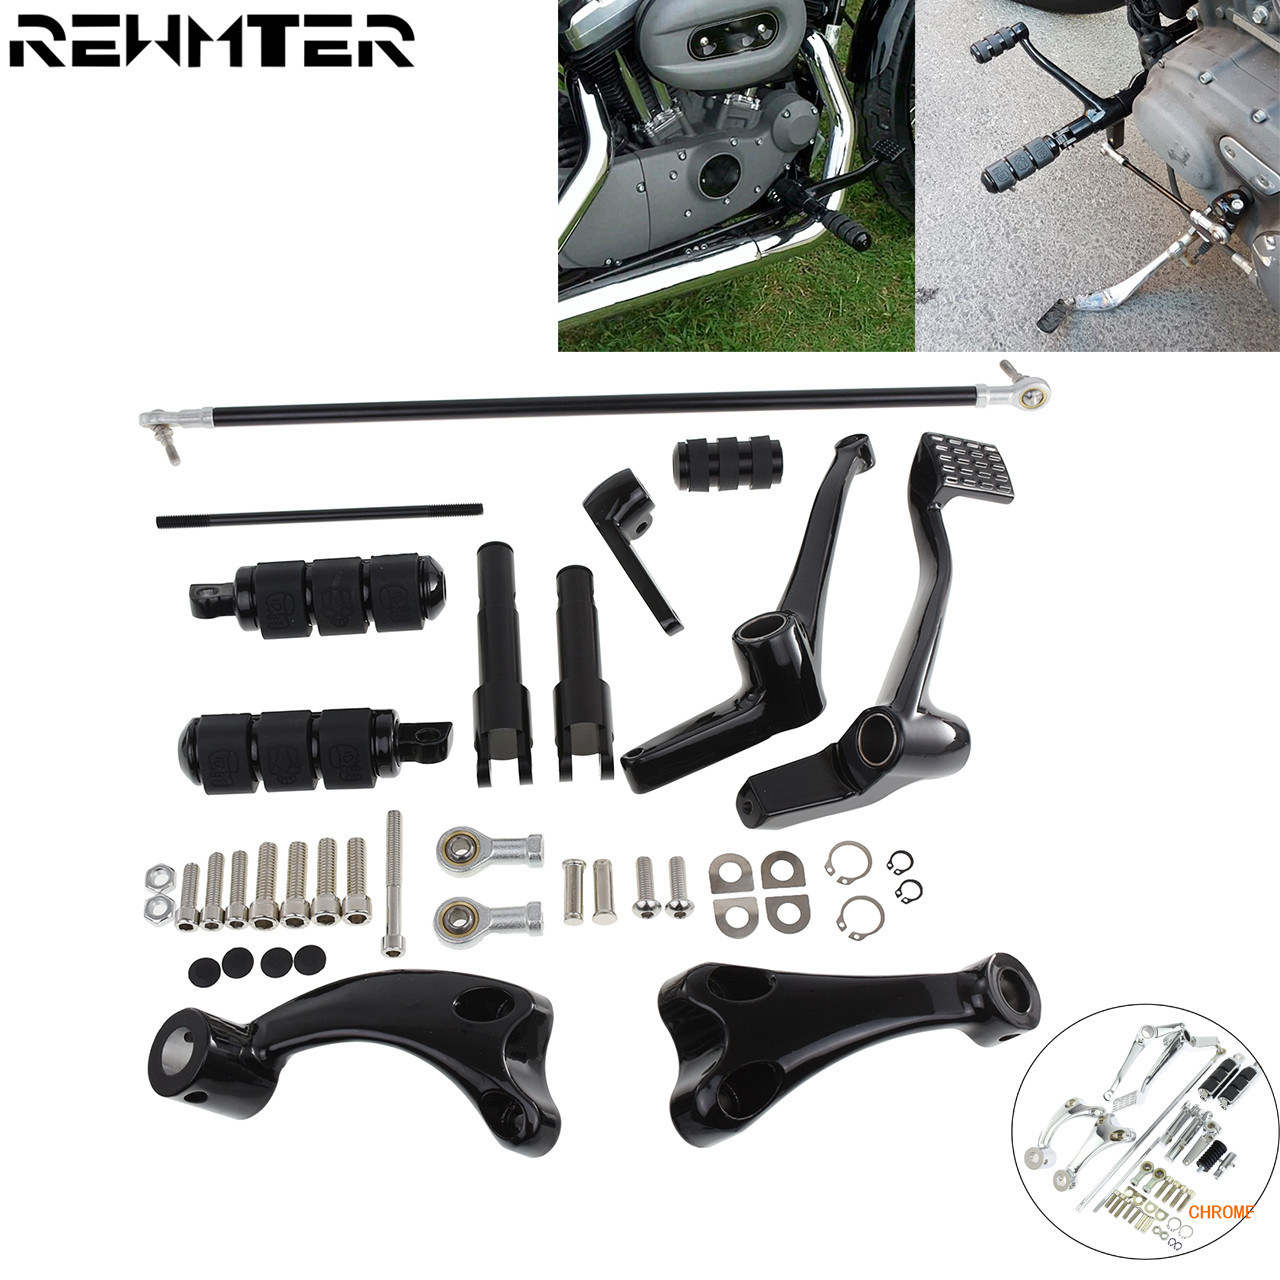 Motorcycle Forward Controls Complete Kit Pegs Levers Linkages Black/Chrome Set For Harley Sportster 883 1200 XL 2004-2014 15 16